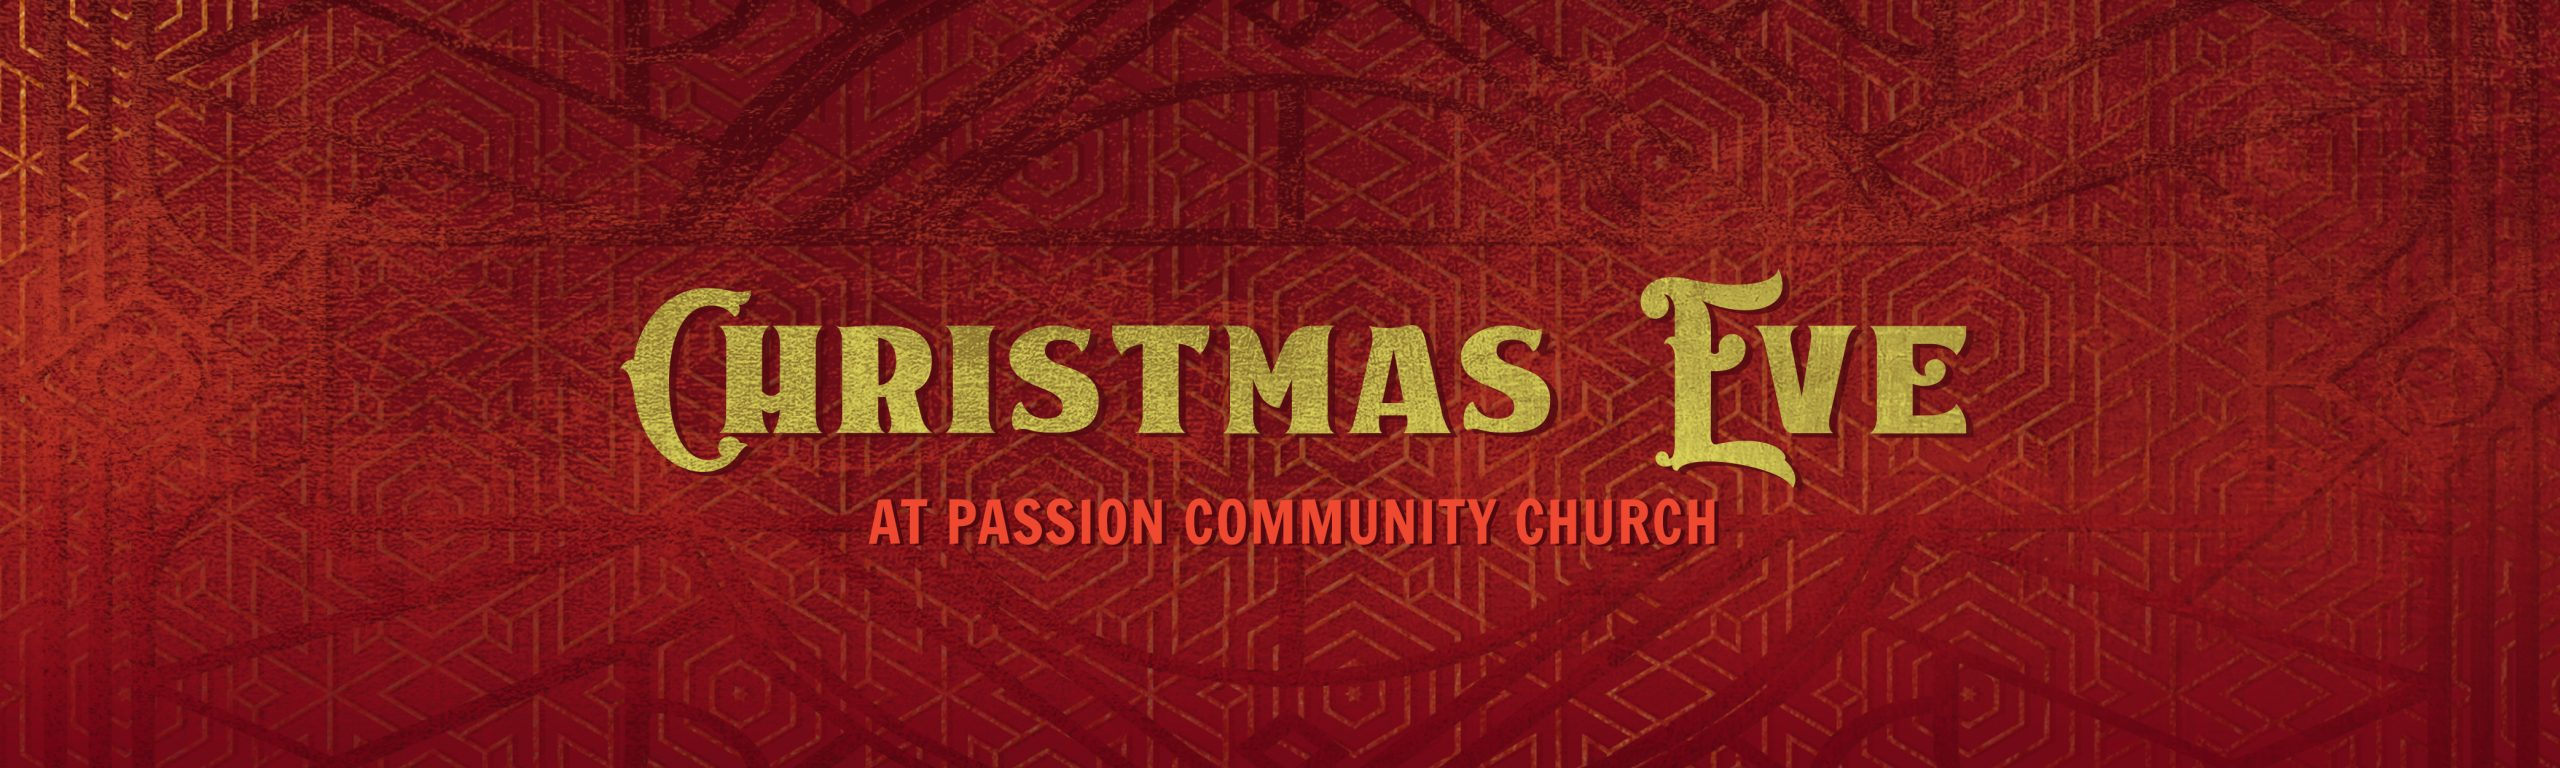 Christmas Eve at Passion Community Church